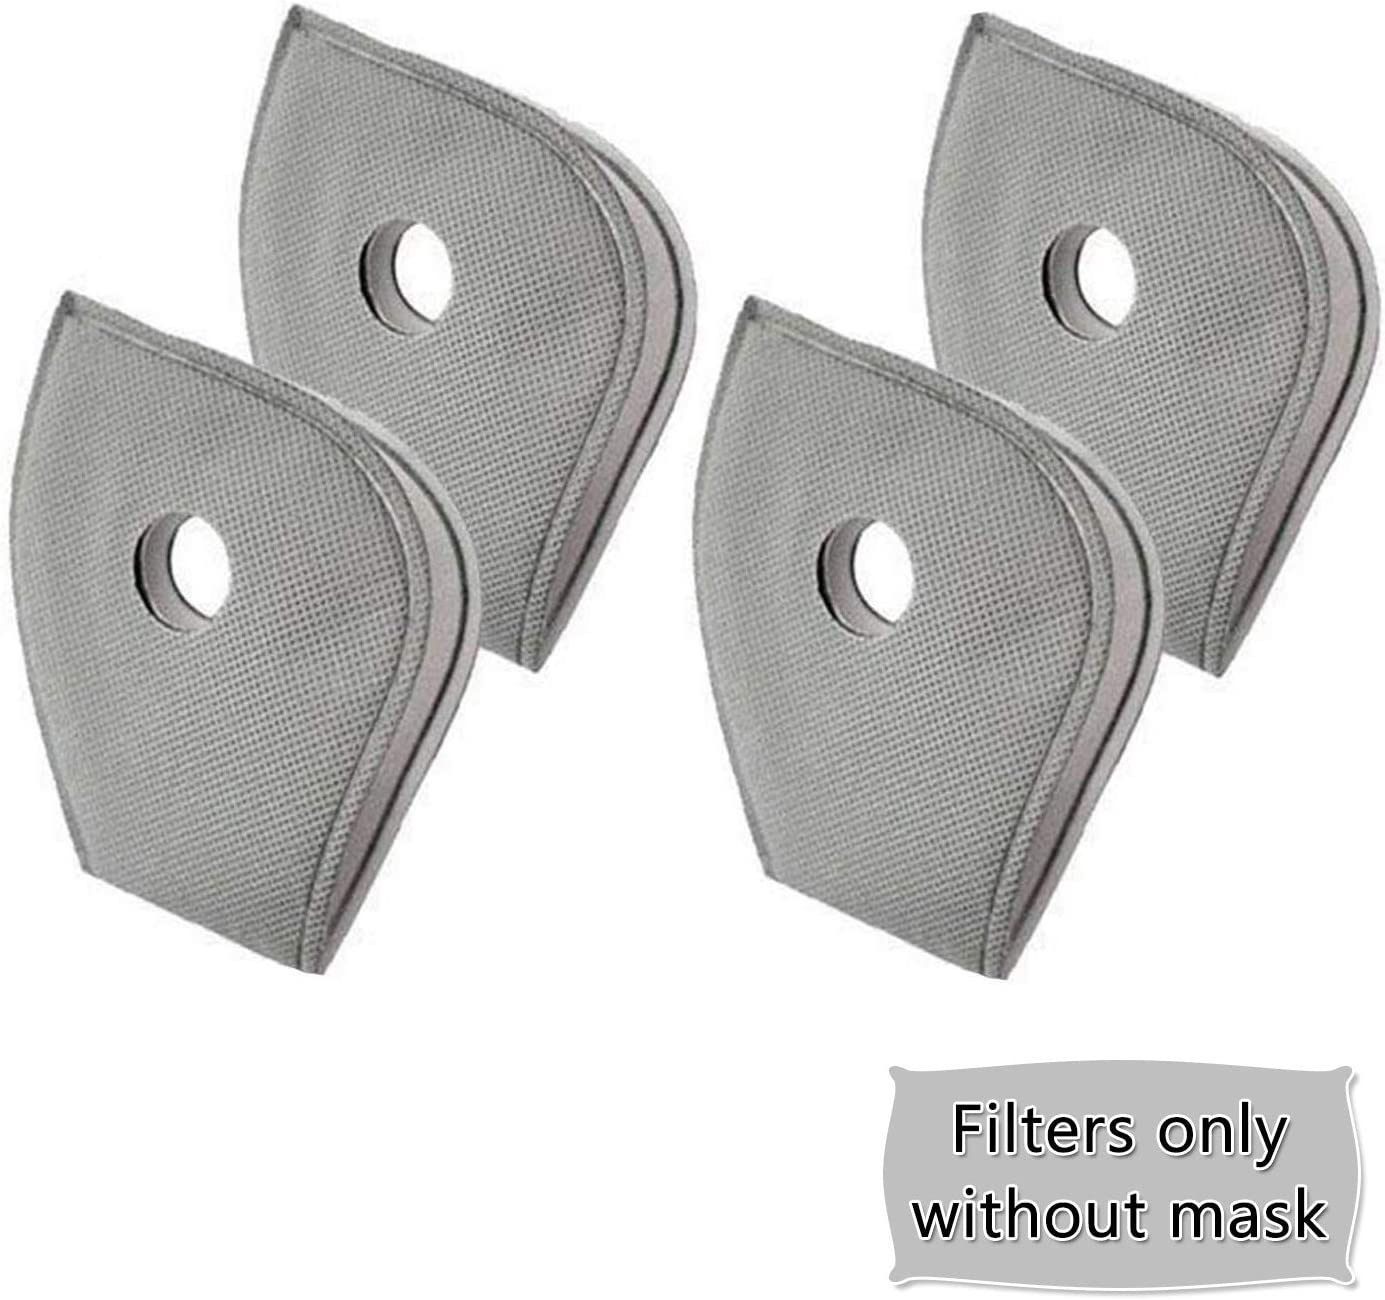 Ready Stock Protective Mouth Filter for Outdoor 5 Layers Replaceable Anti Haze Filters 50 pcs Activated Carbon Filter